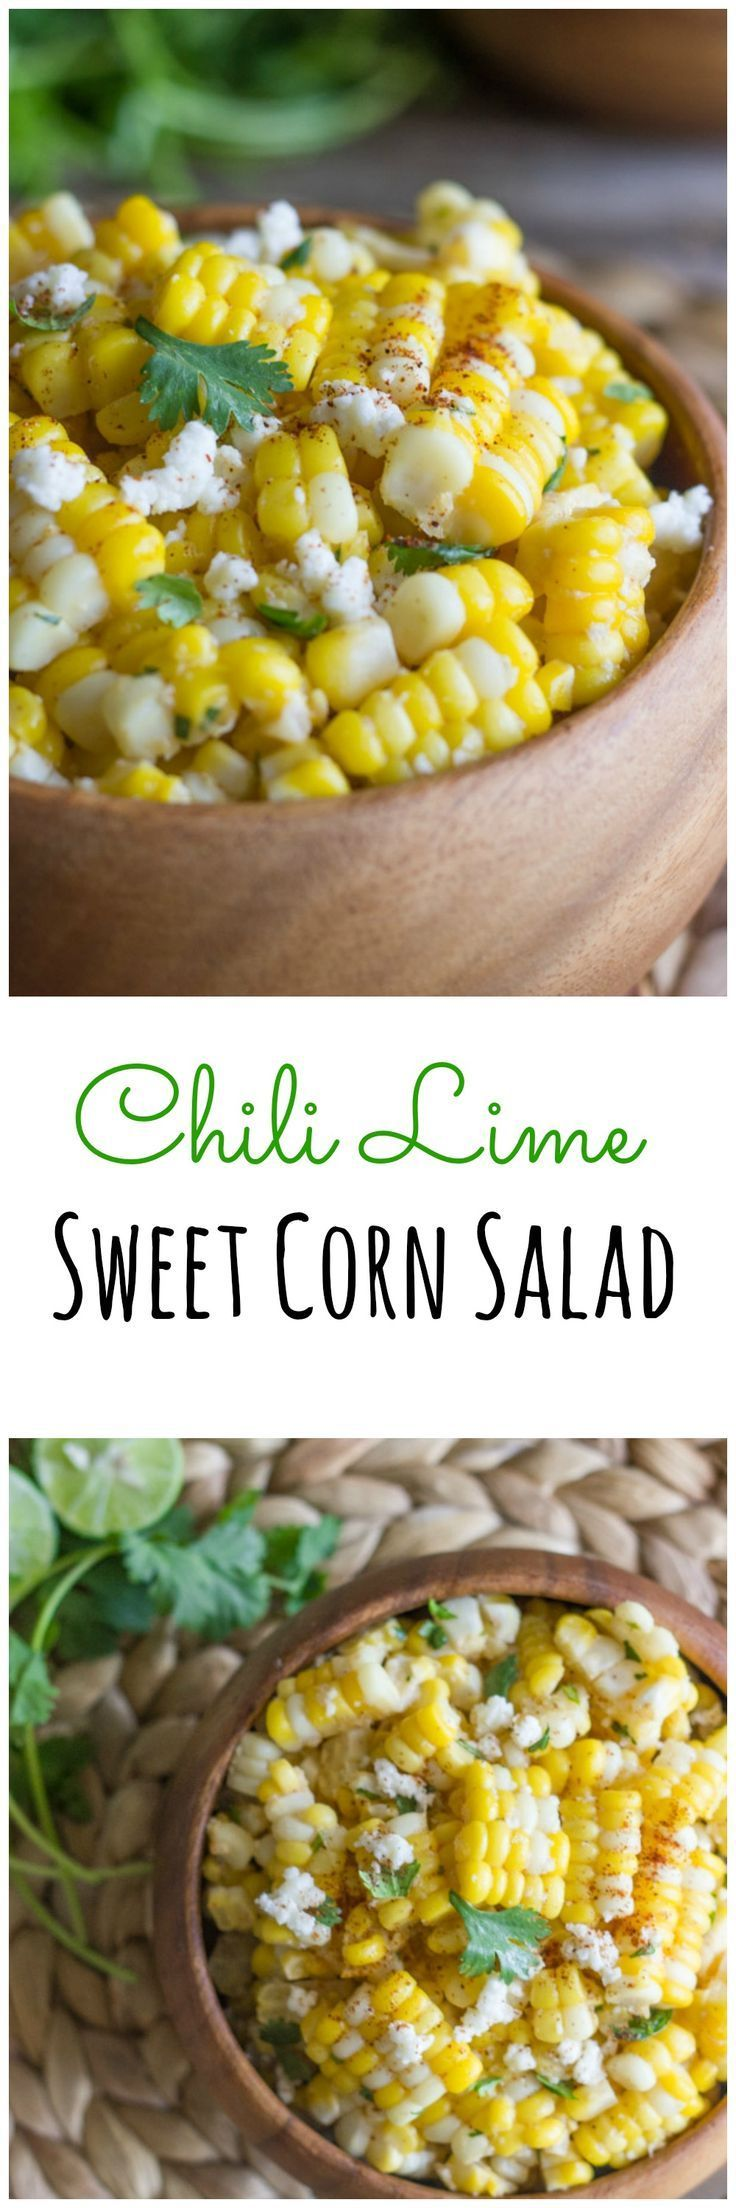 Chili Lime Sweet Corn Salad, Great Recipe | 4th of July Side Dish